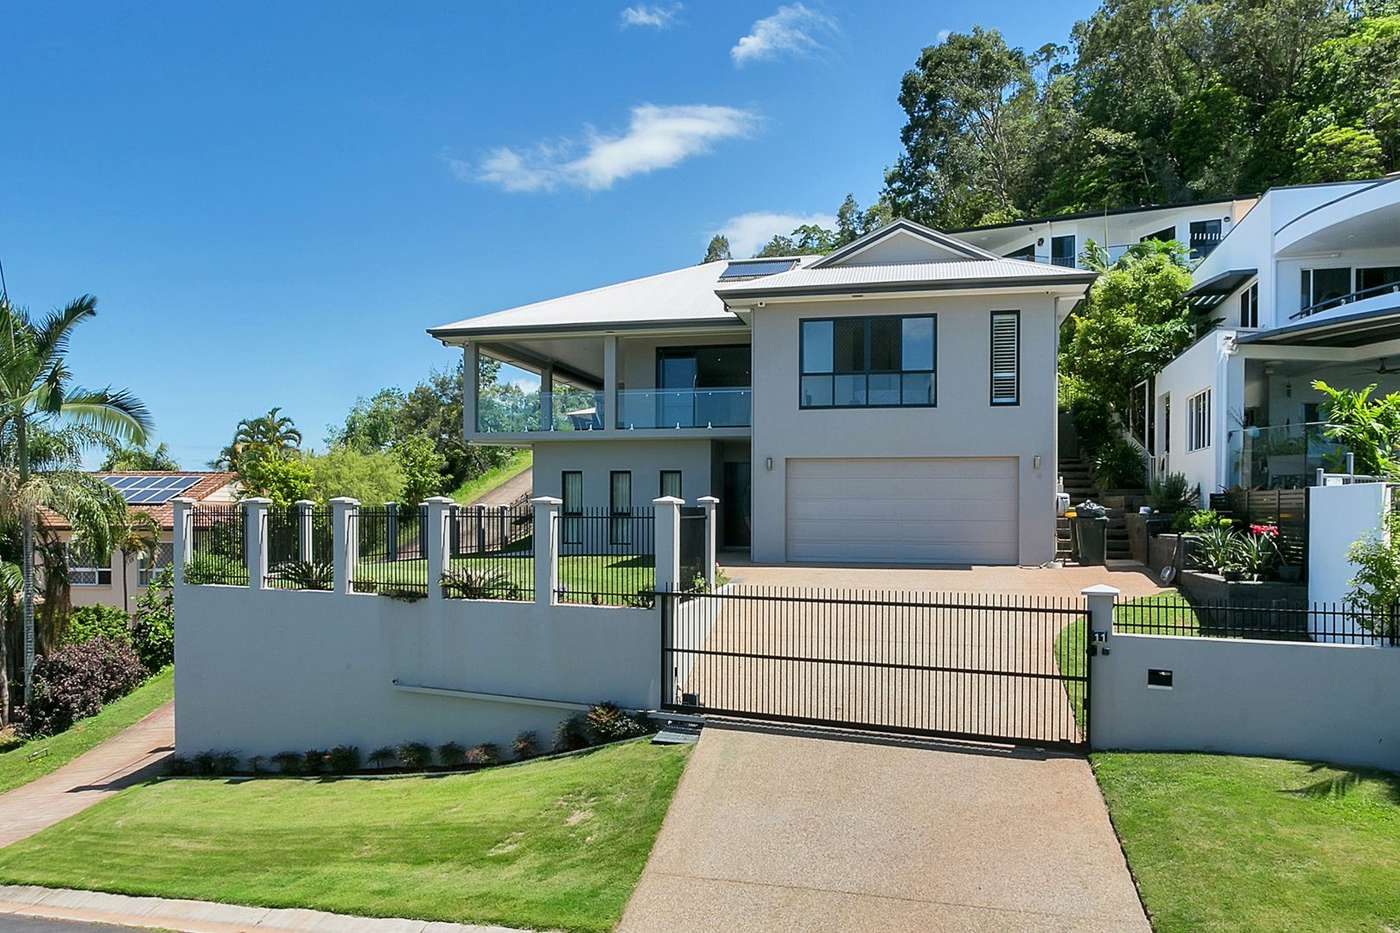 Main view of Homely house listing, 11 Rosemont Court, Mooroobool, QLD 4870